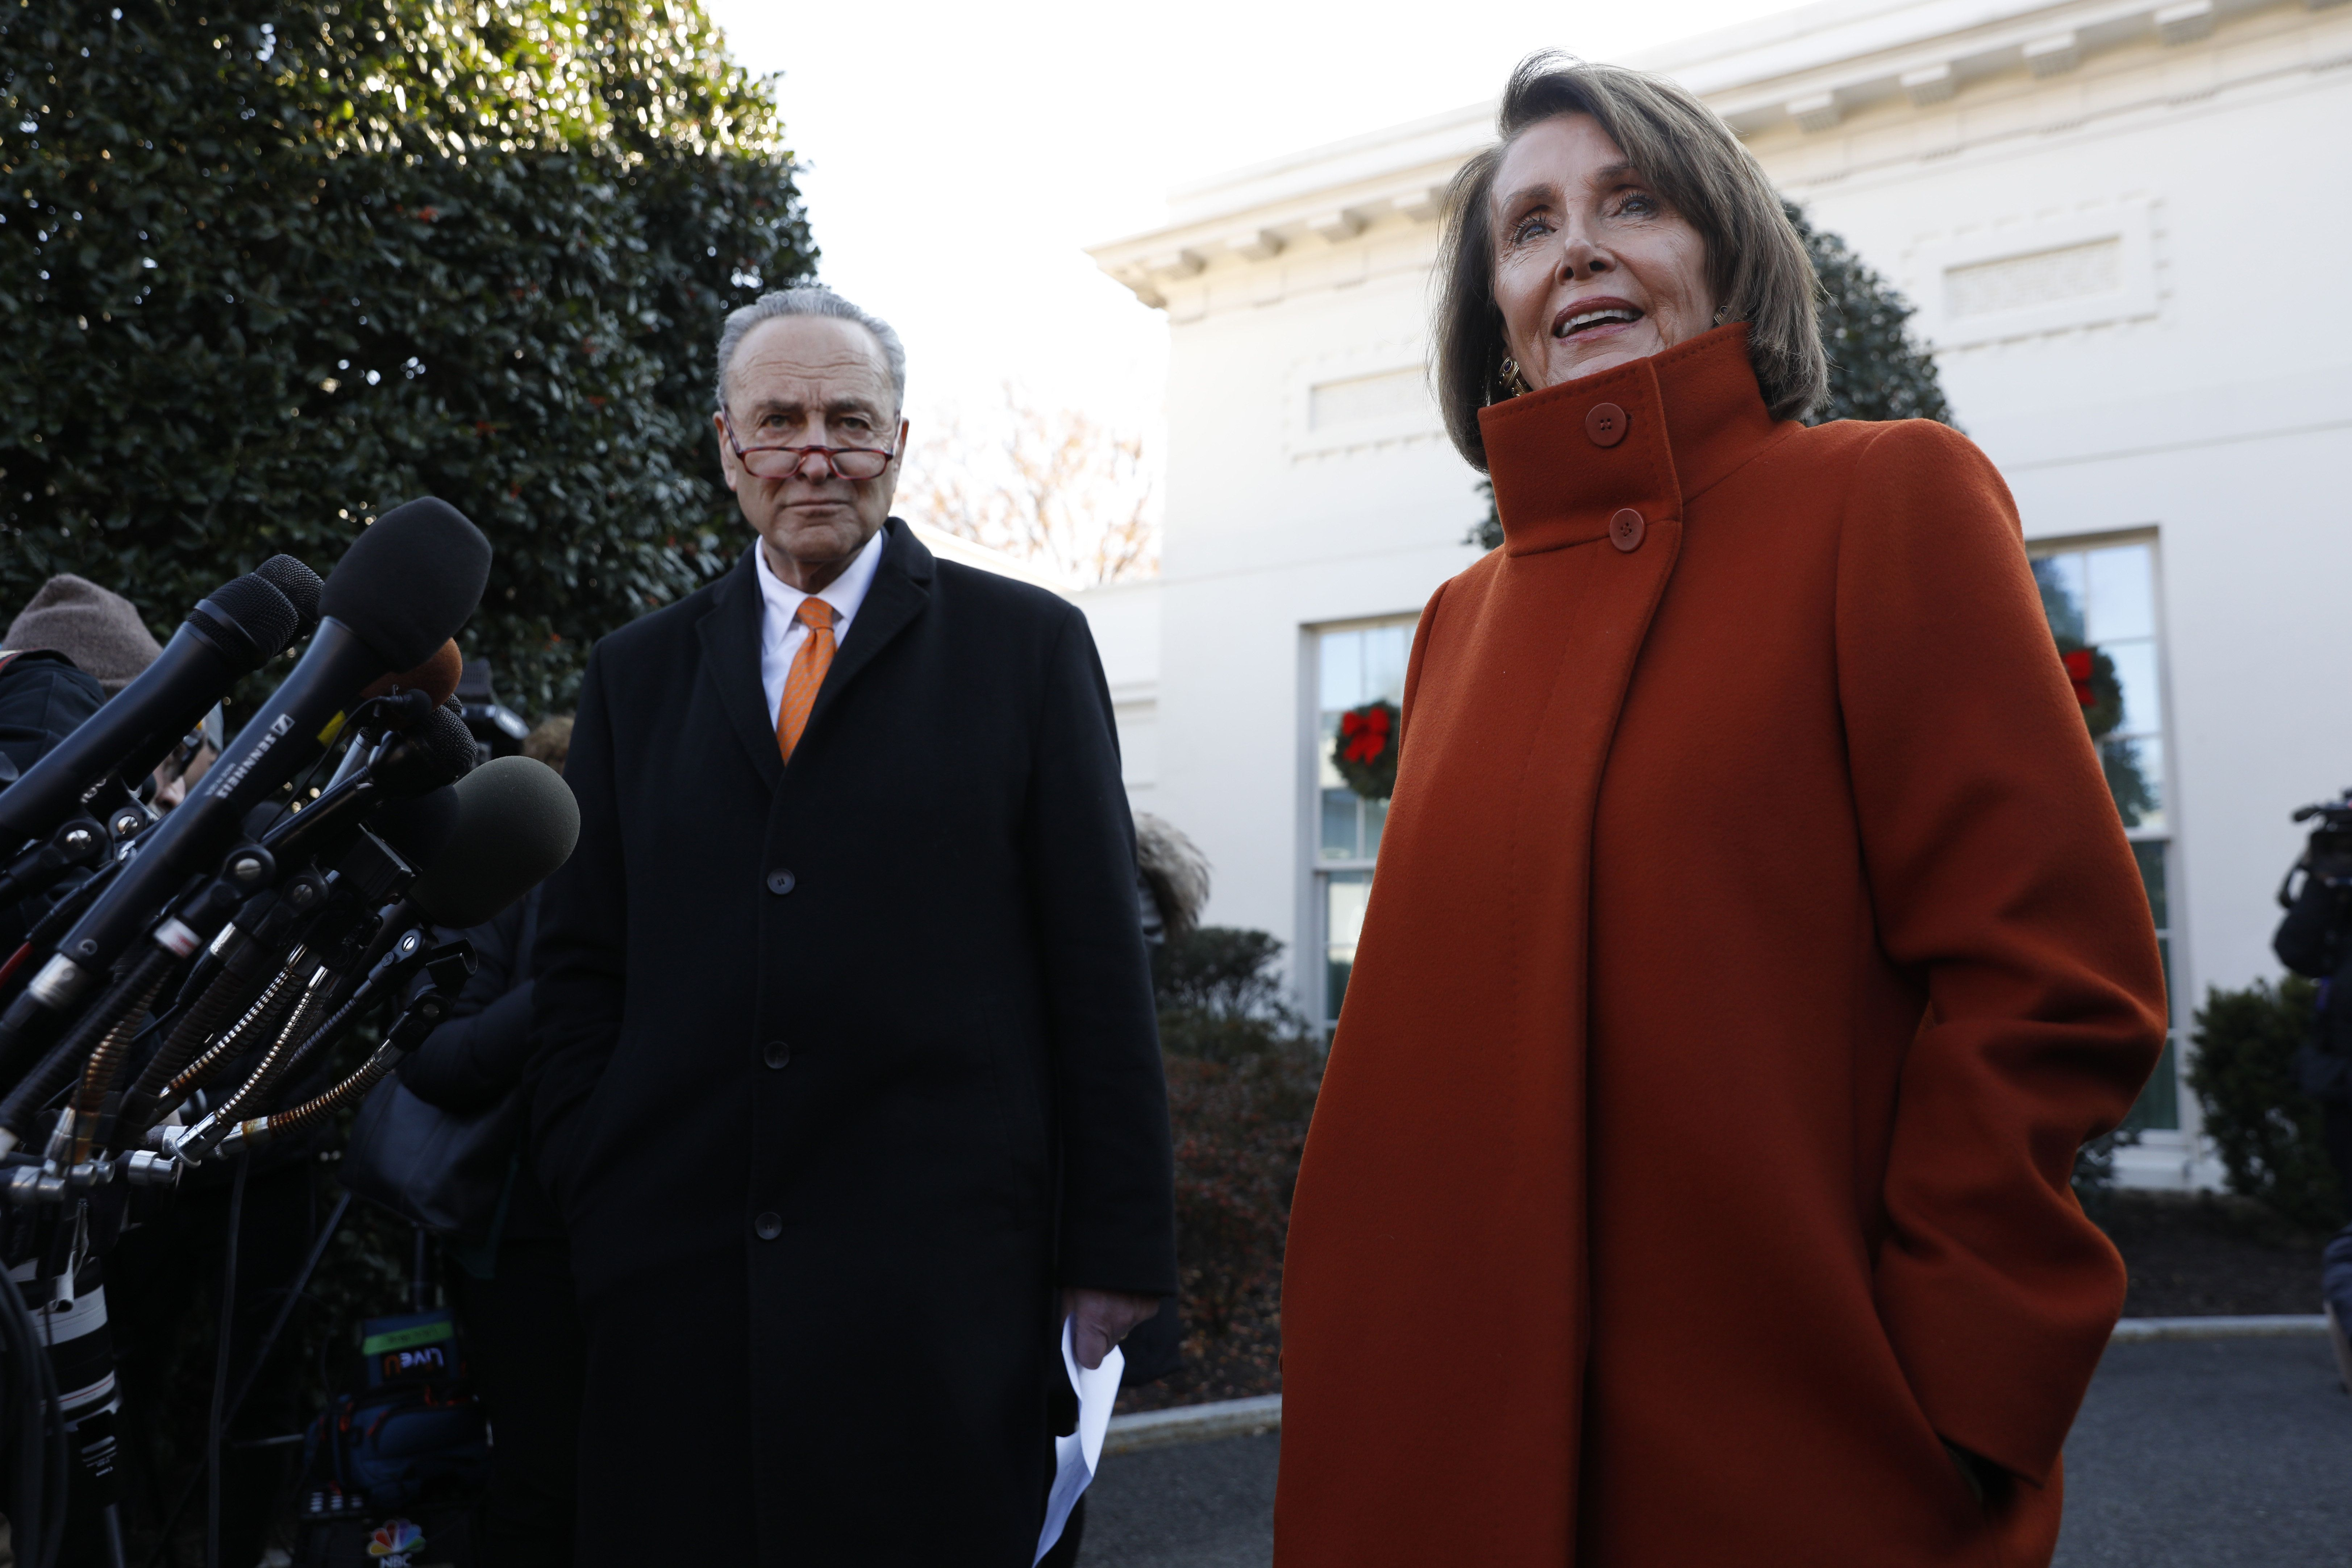 House Minority Leader Nancy Pelosi, a Democrat from California, speaks with members of the media with Senate Minority Leader Chuck Schumer, a Democrat from New York, left, at the White House in Washington, D.C., U.S., on Tuesday, Dec. 11, 2018. If President?Trump?sticks to his demand for $5 billion in funding for a wall on the U.S. border with Mexico, he will get no wall and a shutdown, Schumer told reporters after the meeting. Photographer: Yuri Gripas/Bloomberg via Getty Images